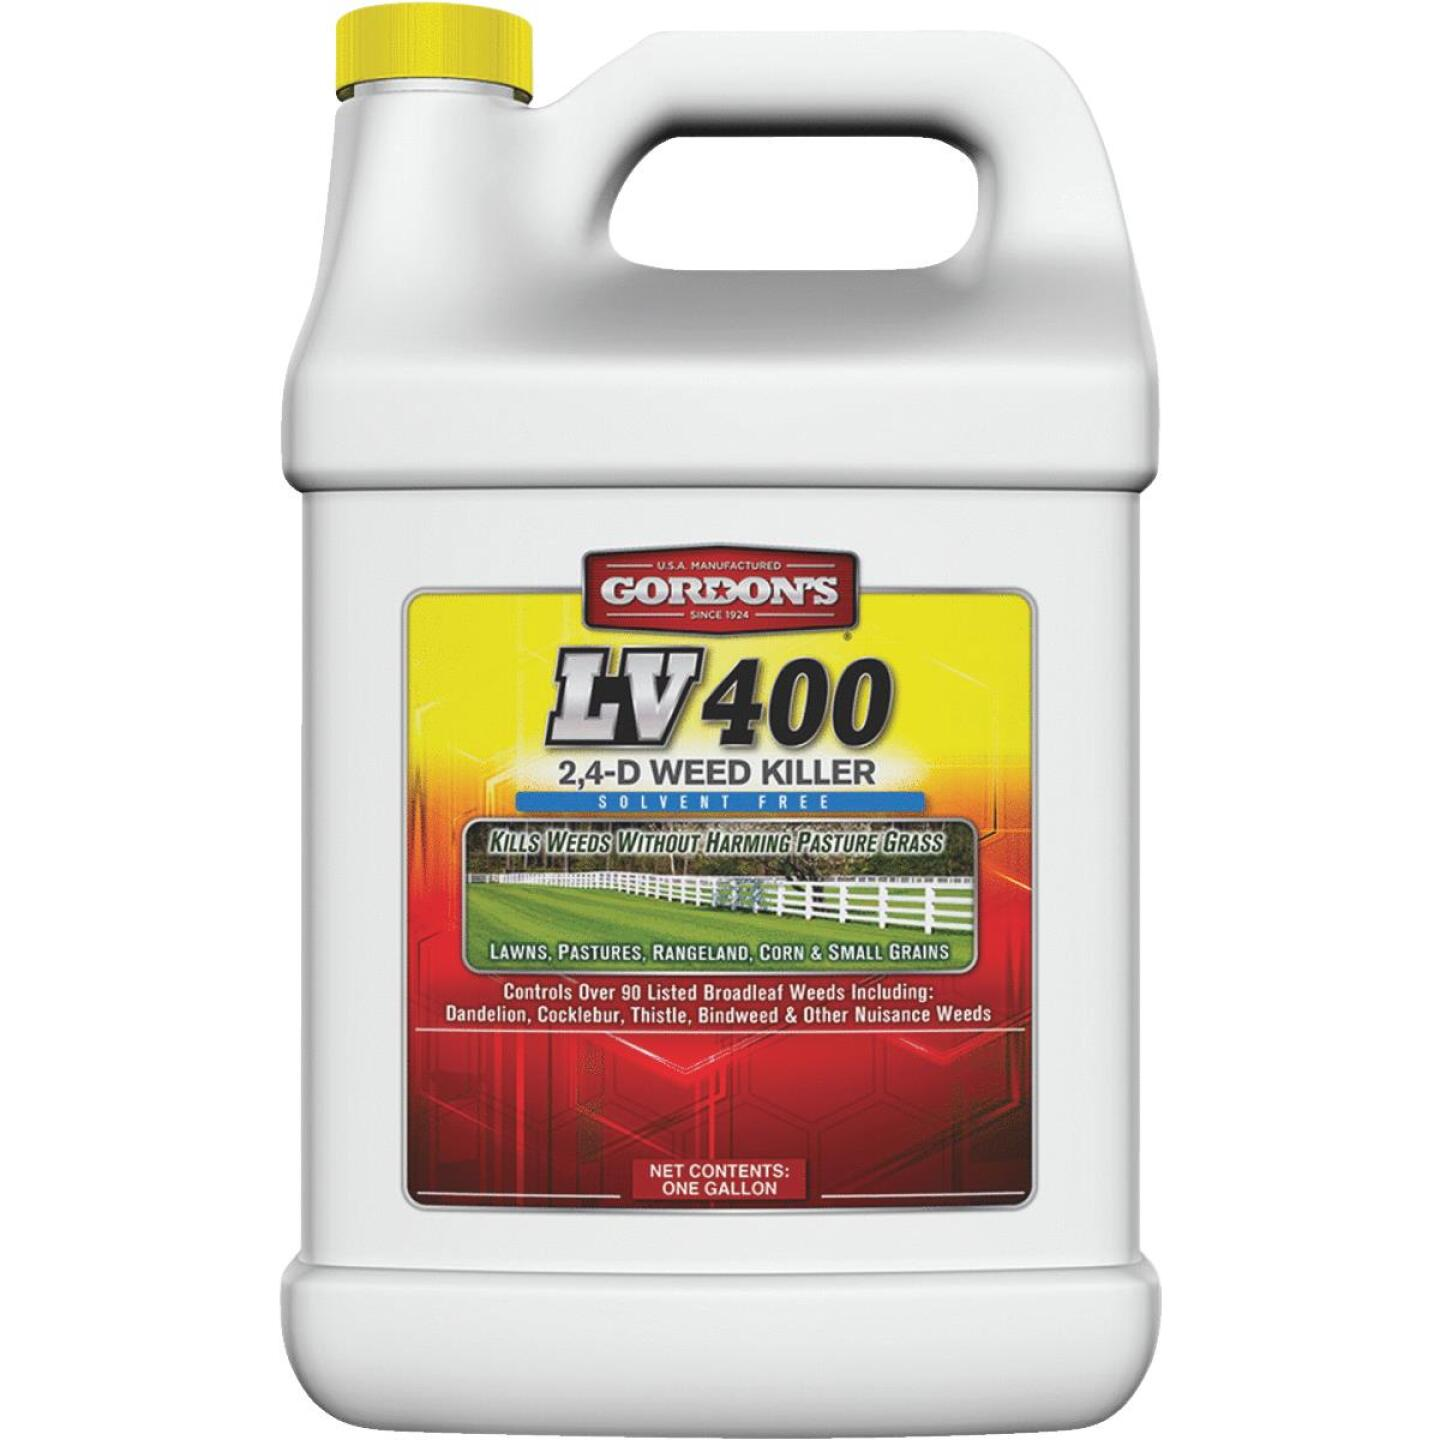 Gordons LV400 1 Gal. Concentrate Weed Killer Image 1